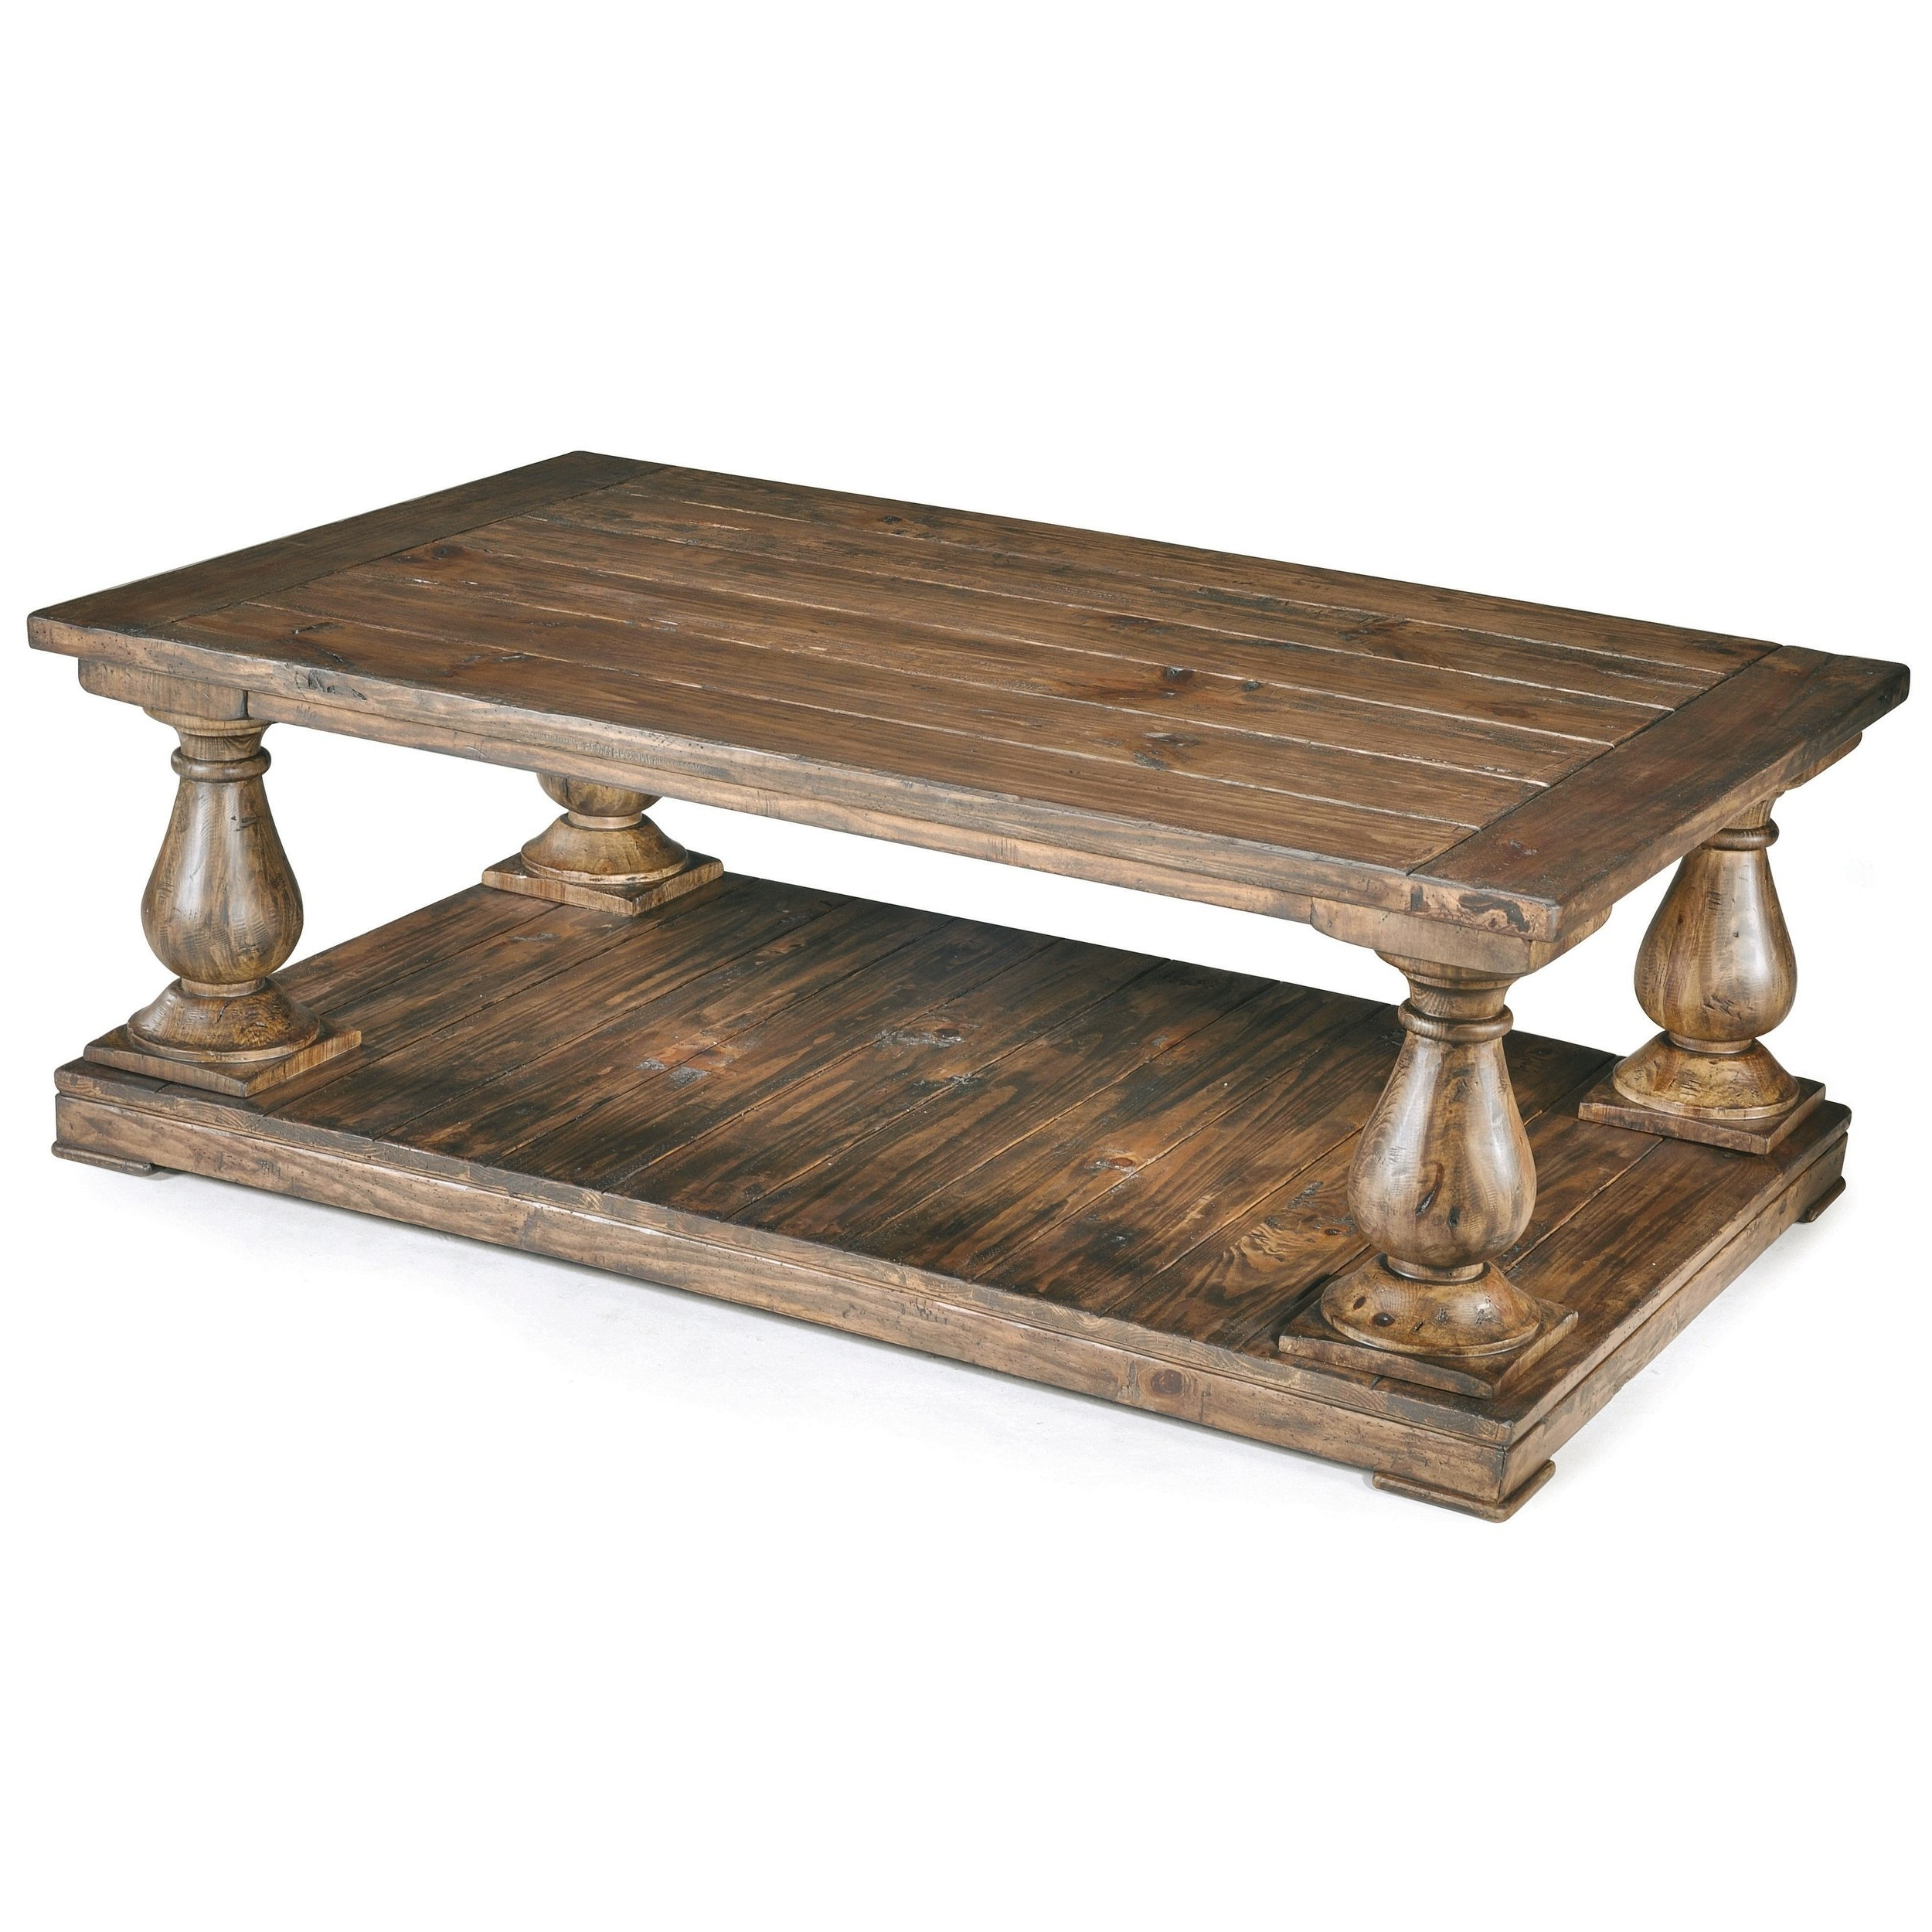 Natural Pine Coffee Tables With Regard To Latest Shop Densbury Traditional Rustic Natural Pine Coffee Table – On Sale (View 15 of 20)